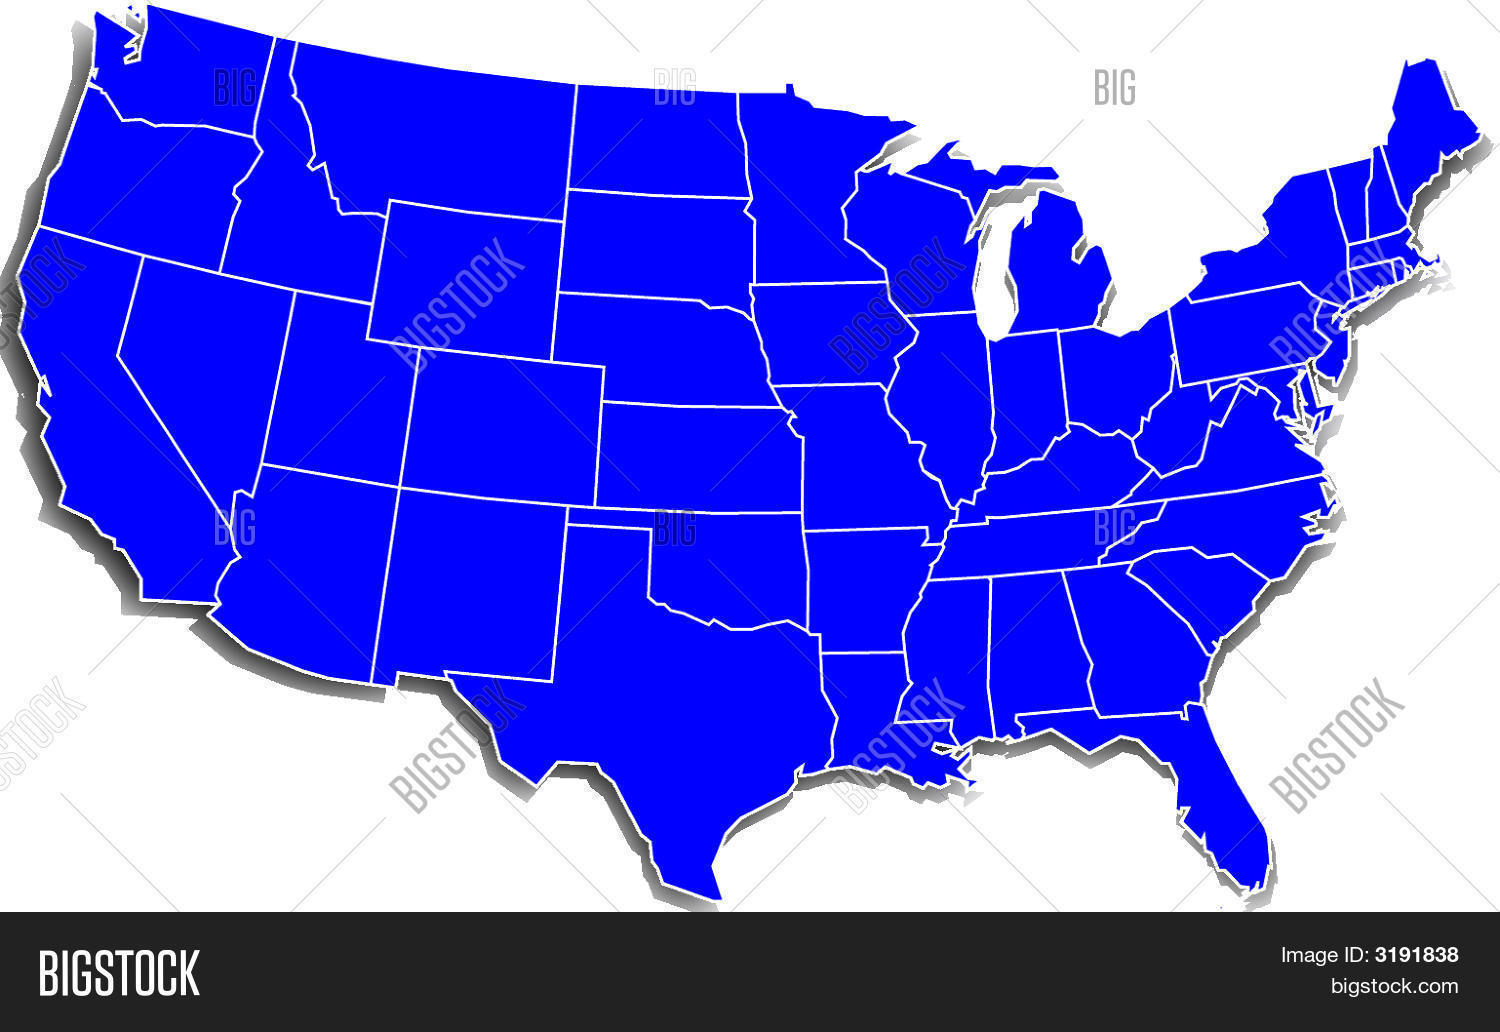 Simple U.S. Map Stock Photo & Stock Images